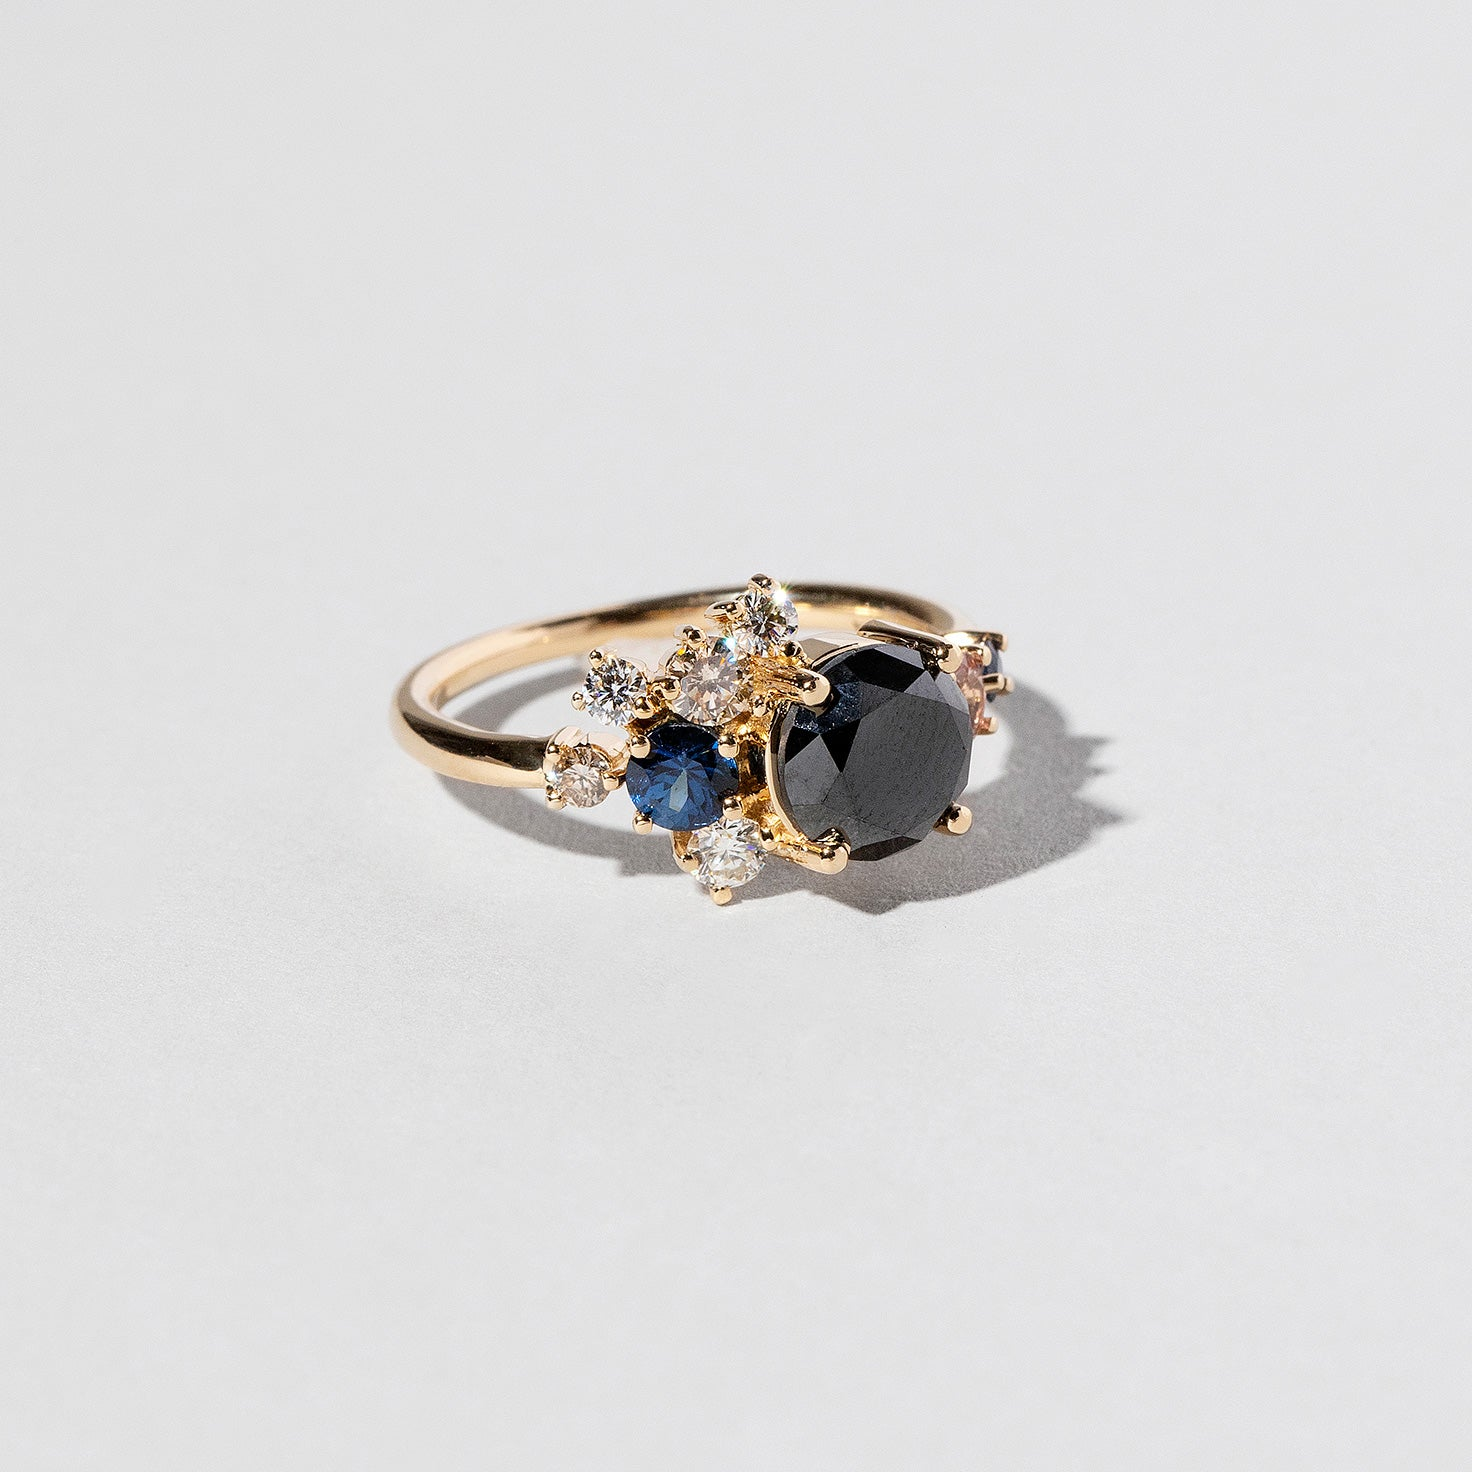 Vega Stone Cluster Ring with black diamond center stone